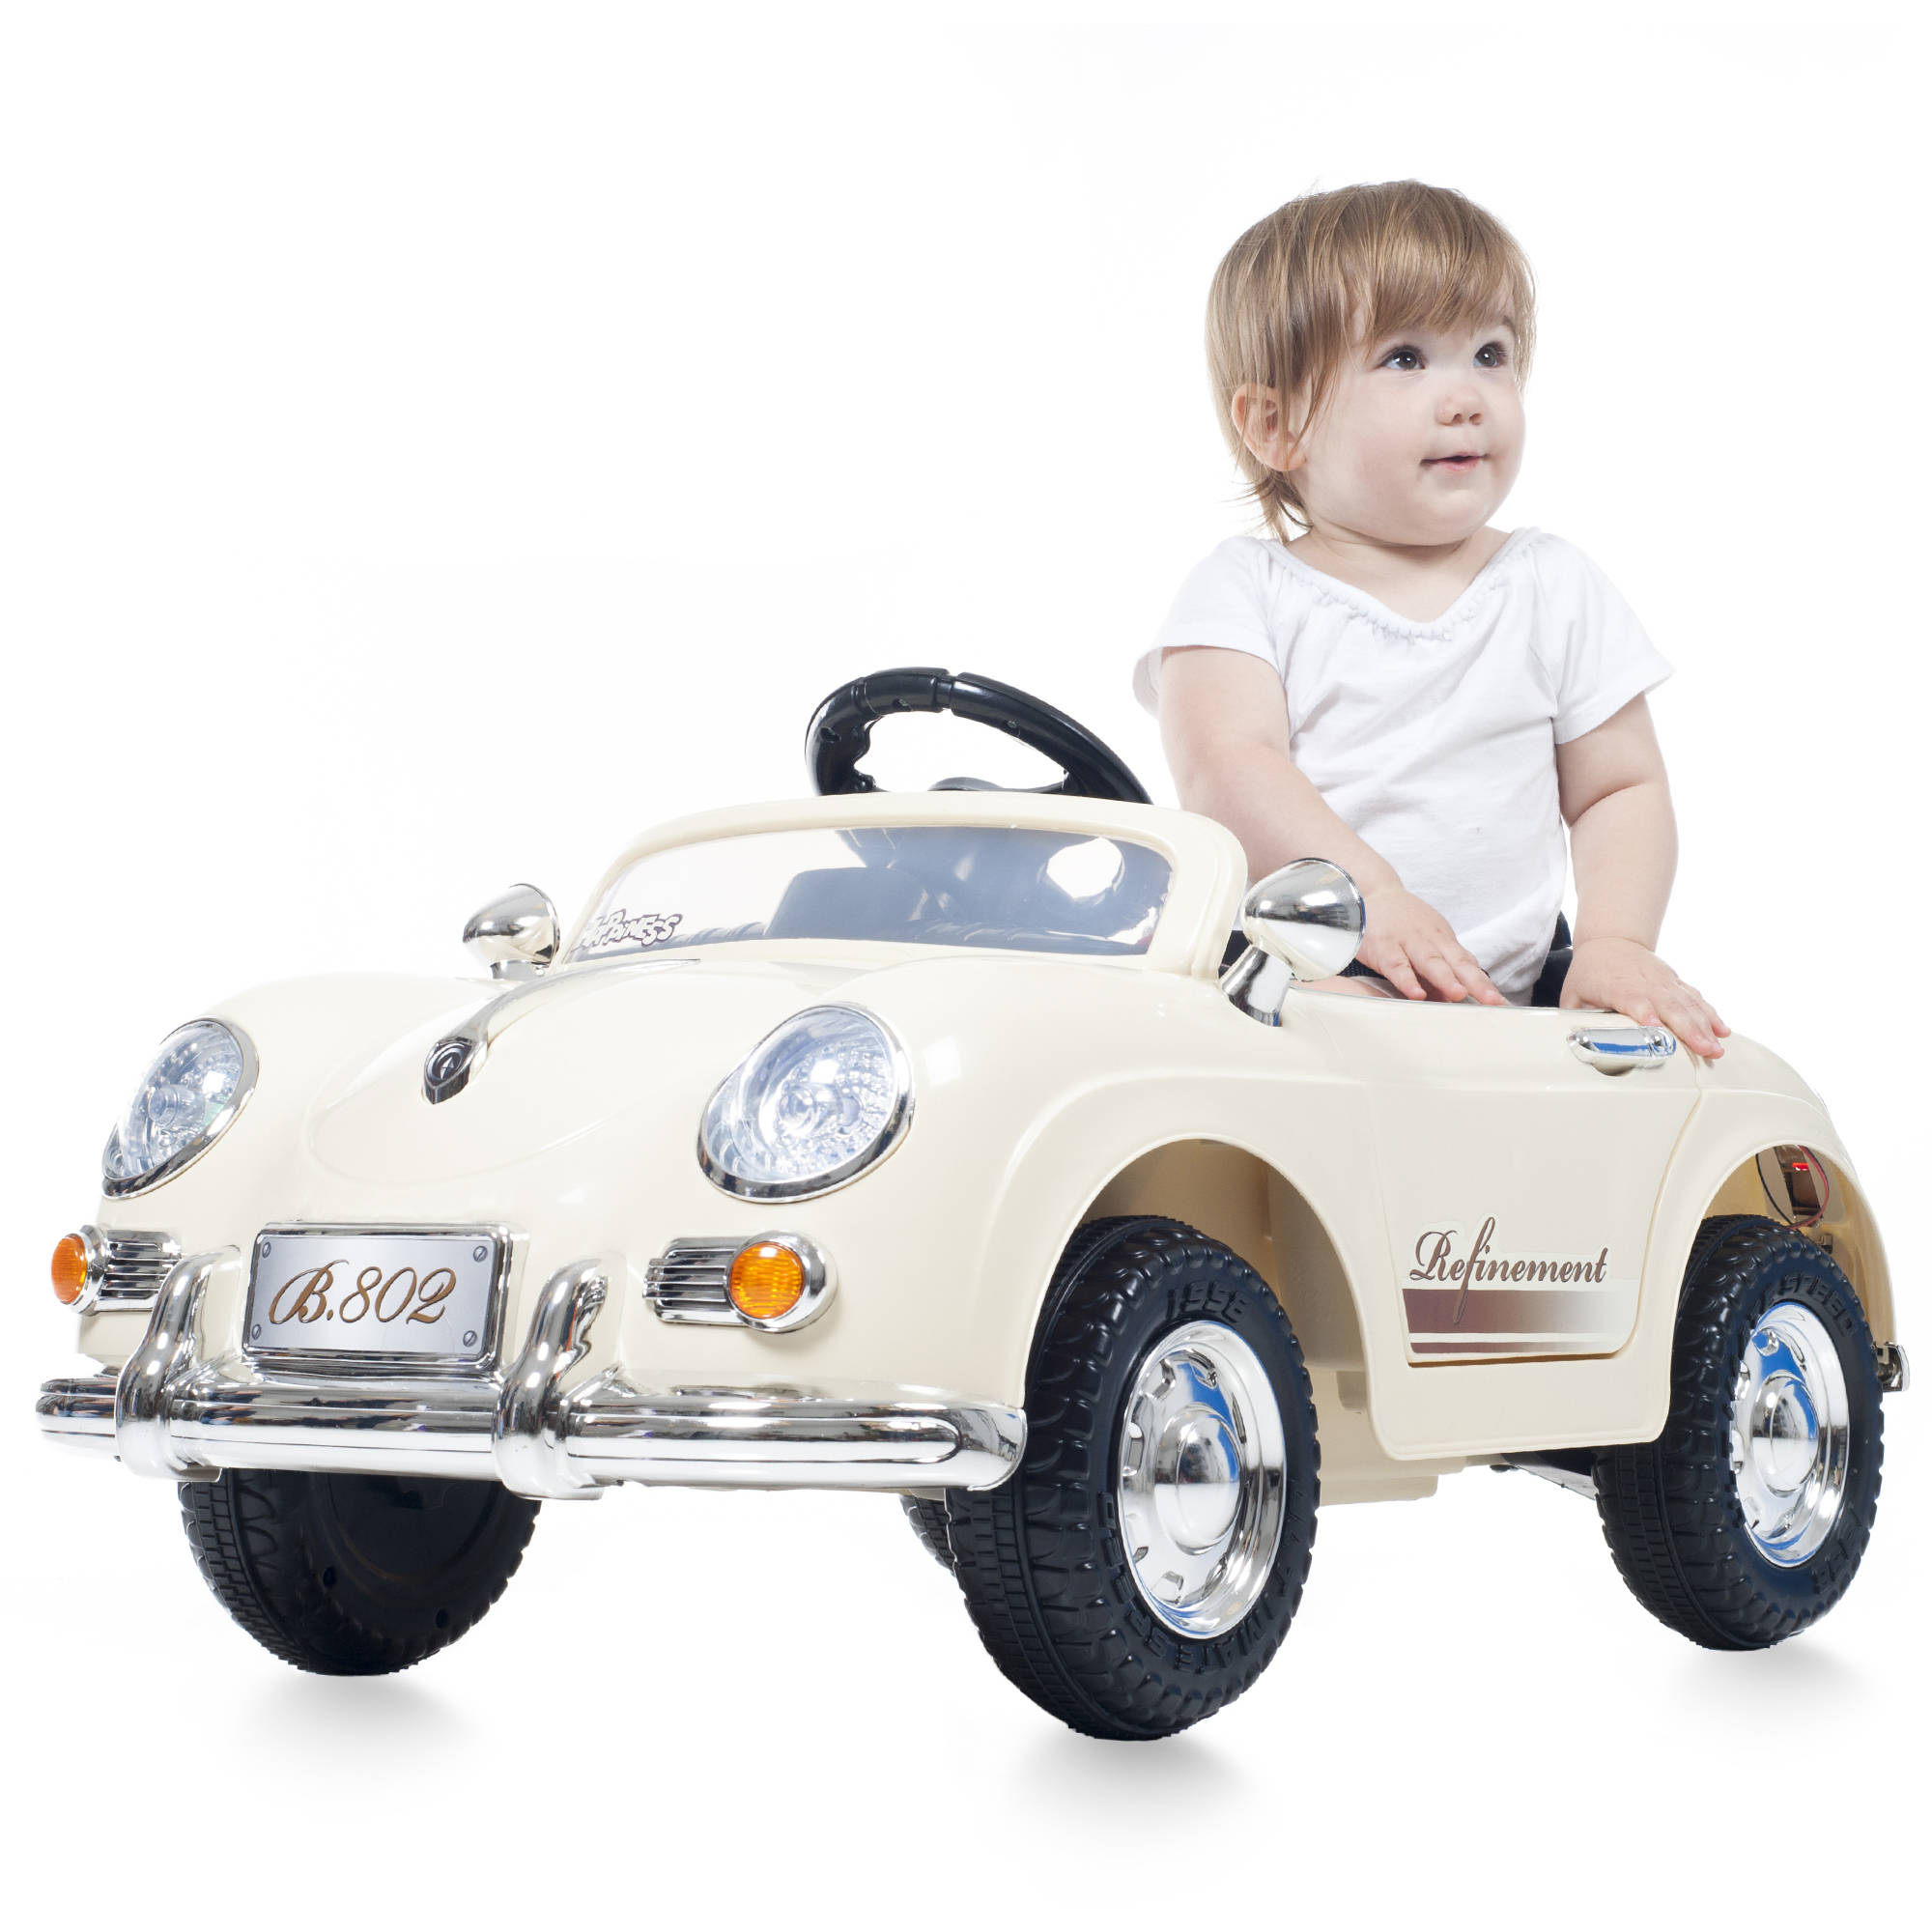 Battery Operated Children's Cars New Ride On Sports Car toddler Kids toy Play Battery Operated Remote